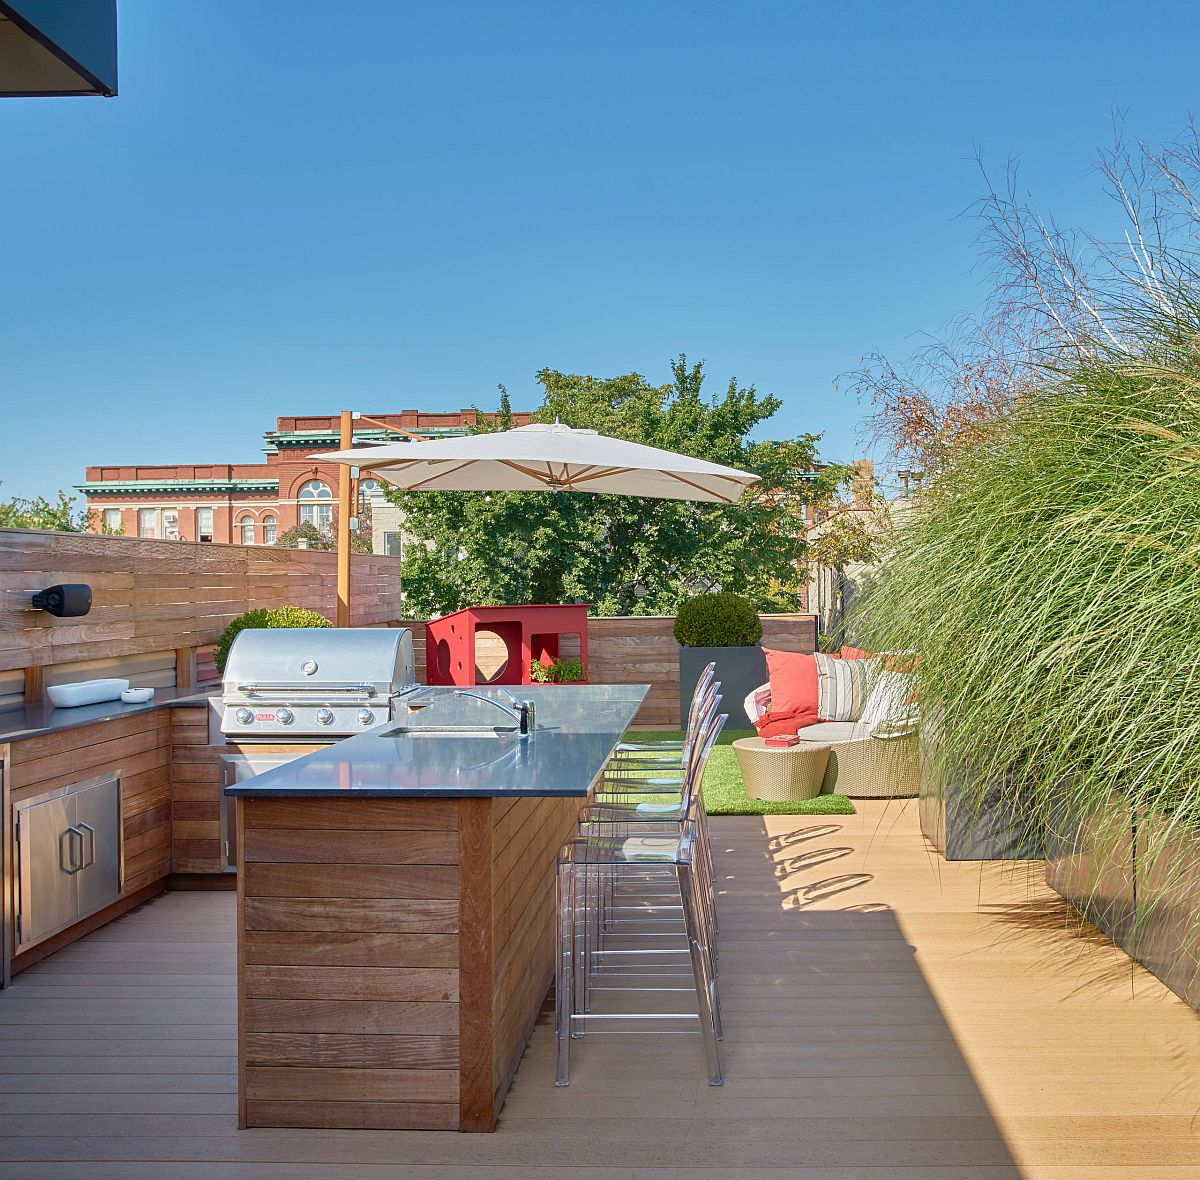 Combine-the-garden-and-rooftop-dining-experiences-with-the-best-of-both-worlds-92177